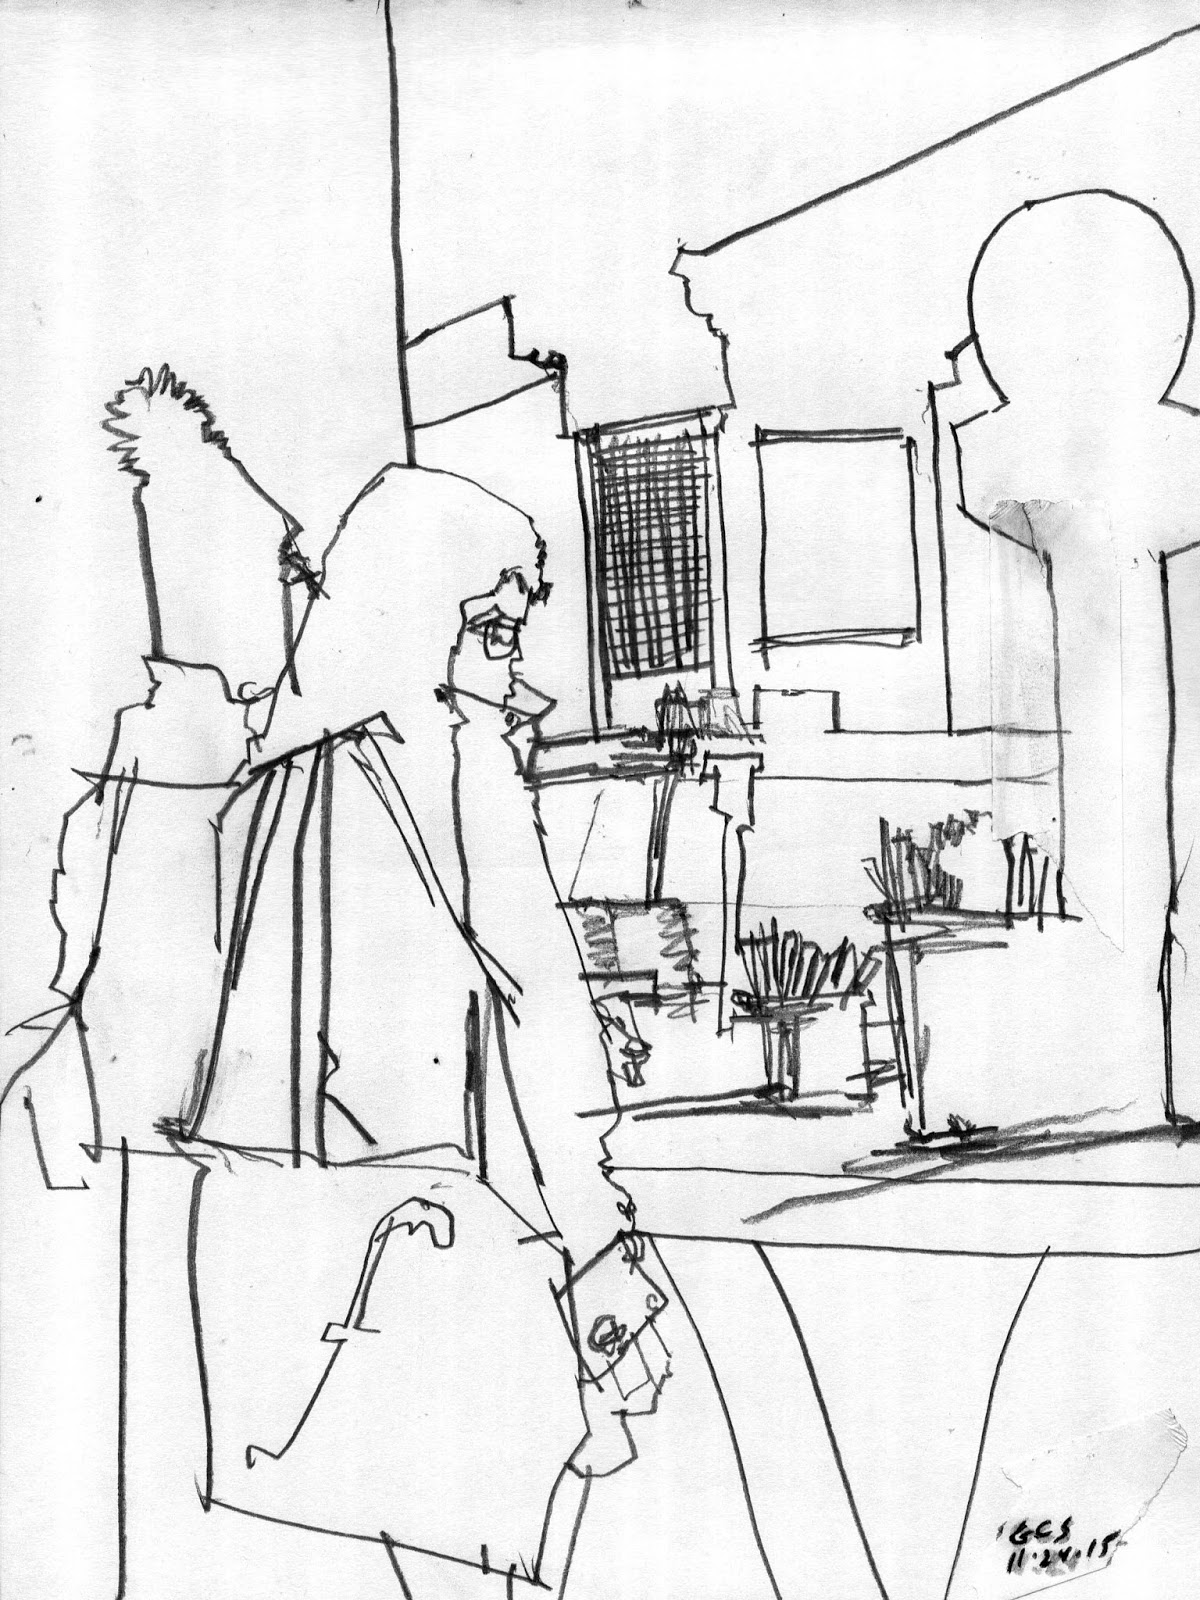 1200x1600 Drawing On Location (Before The Wombats) Grand Central Station